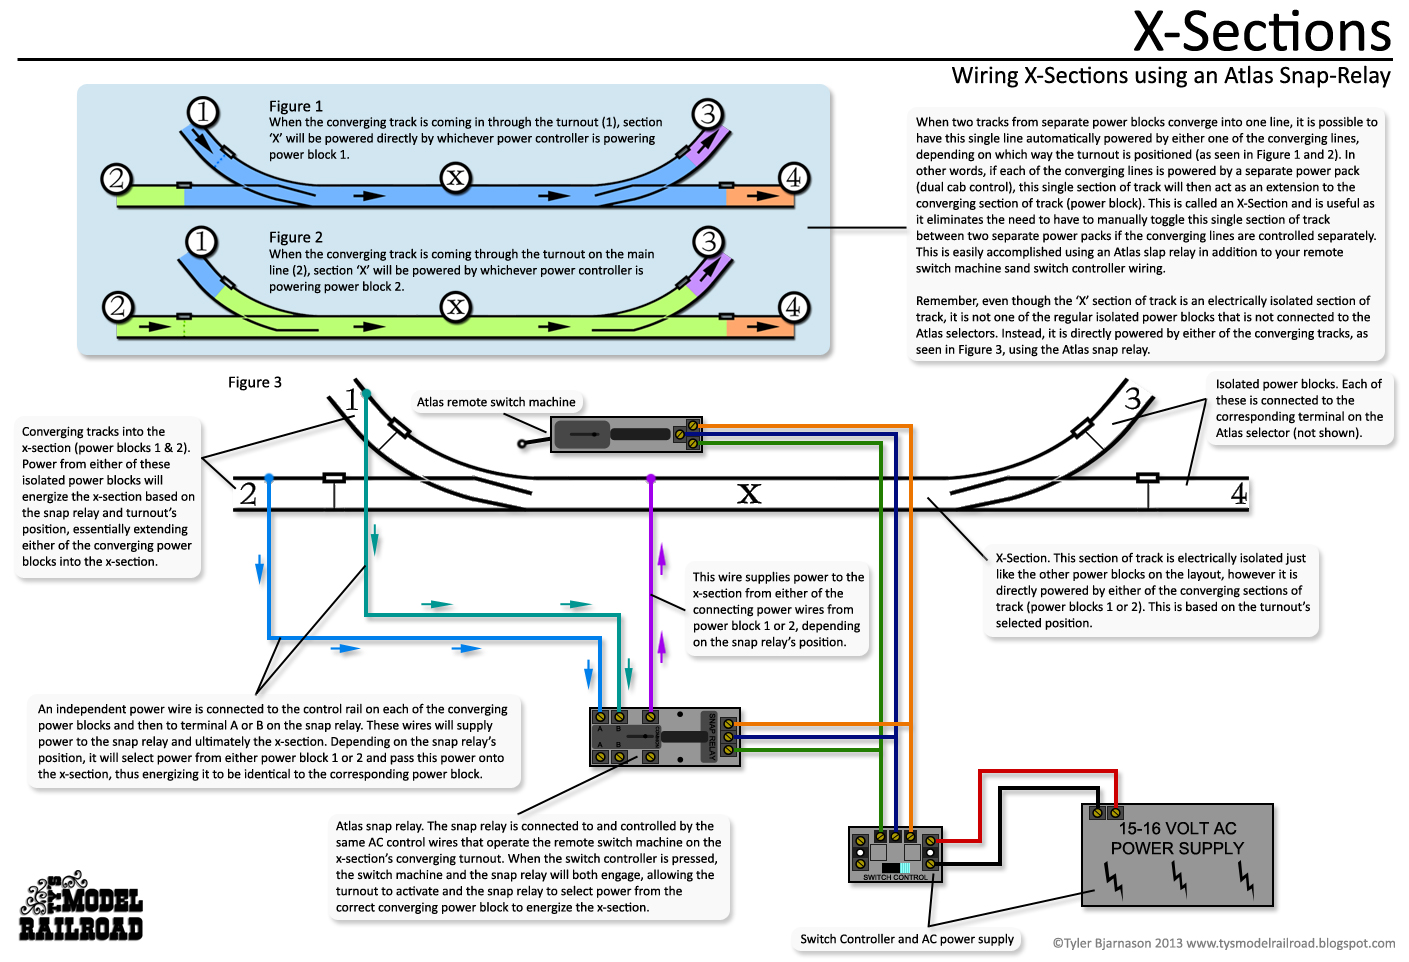 Tys Model Railroad Wiring Diagrams Power Supply Schematic Diagram Likewise Switching How To Wire An X Section Using Atlas Snap Relay And Existing Remote Switch